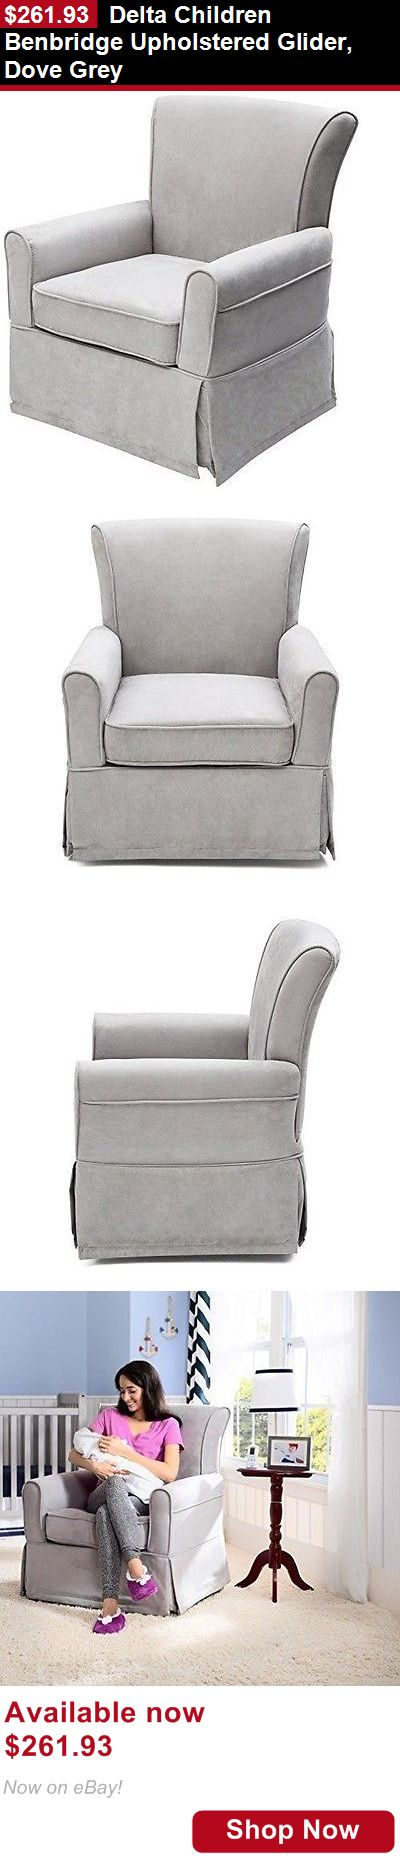 Rockers Gliders: Delta Children Benbridge Upholstered Glider, Dove Grey BUY IT NOW ONLY: $261.93